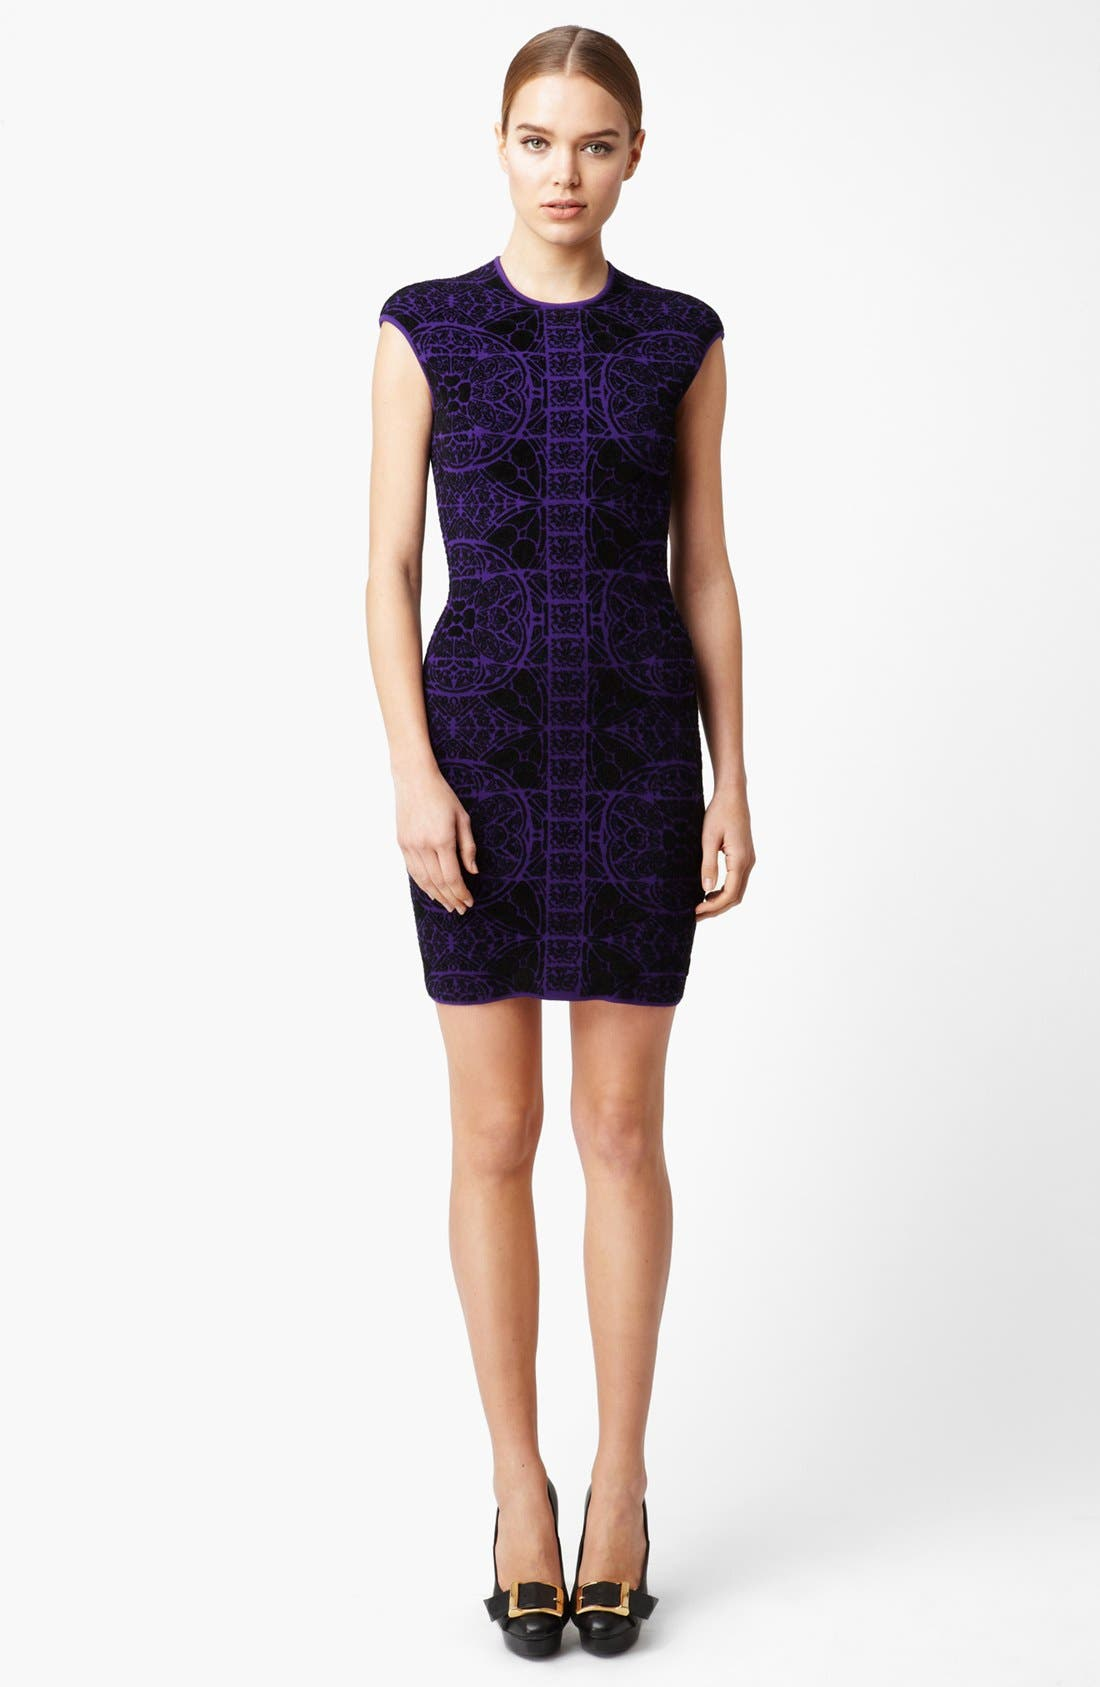 Main Image - Alexander McQueen Stained Glass Print Intarsia Knit Dress